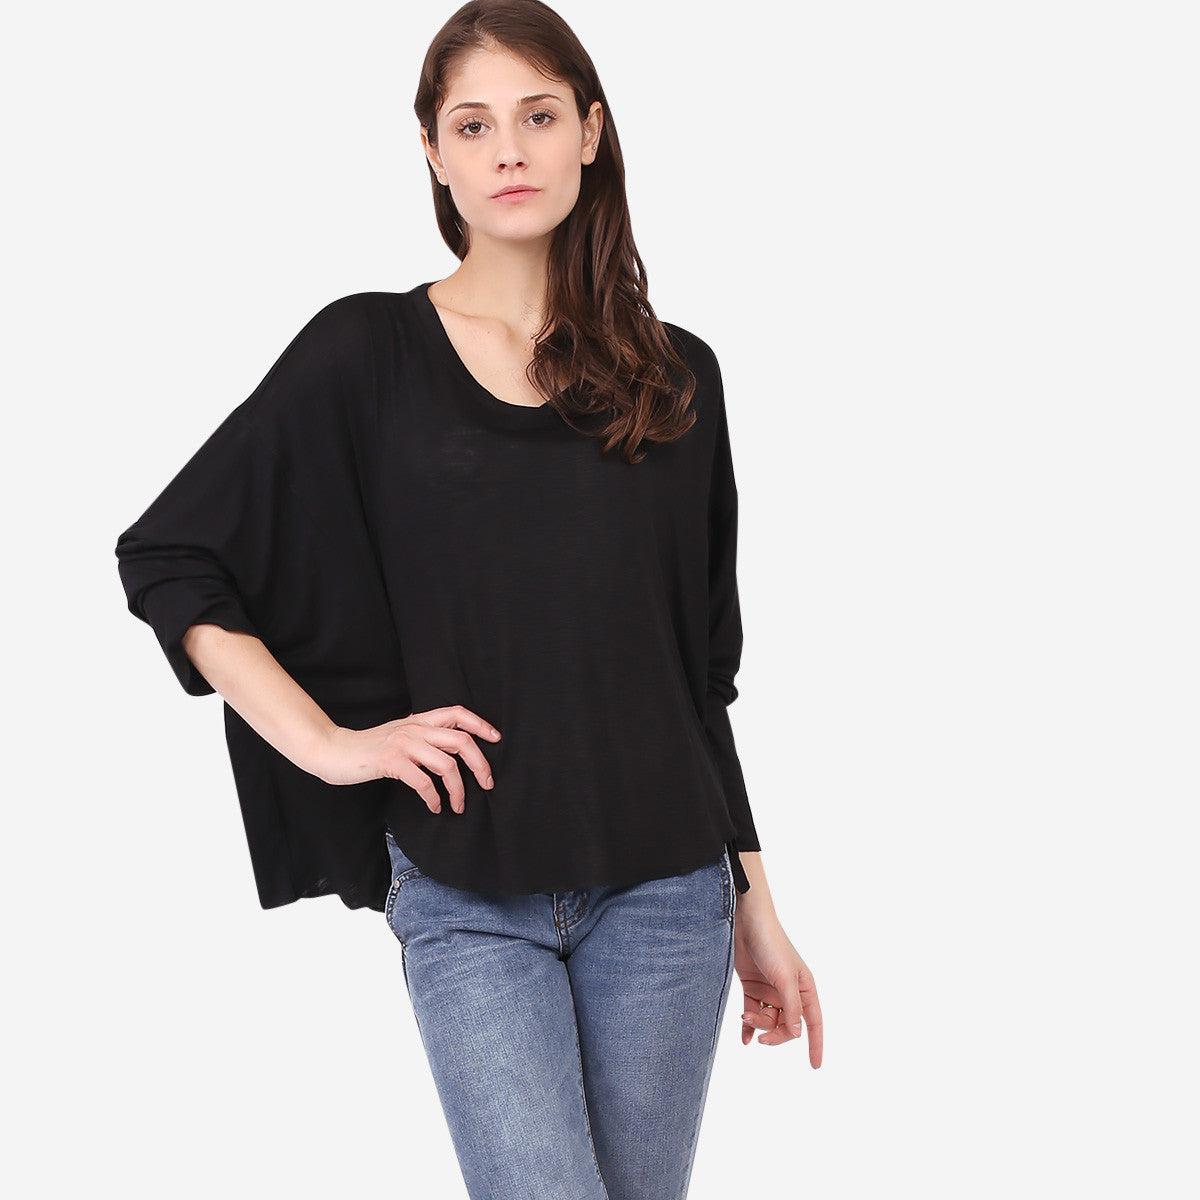 Black Relaxed Knit Top with Seam Details